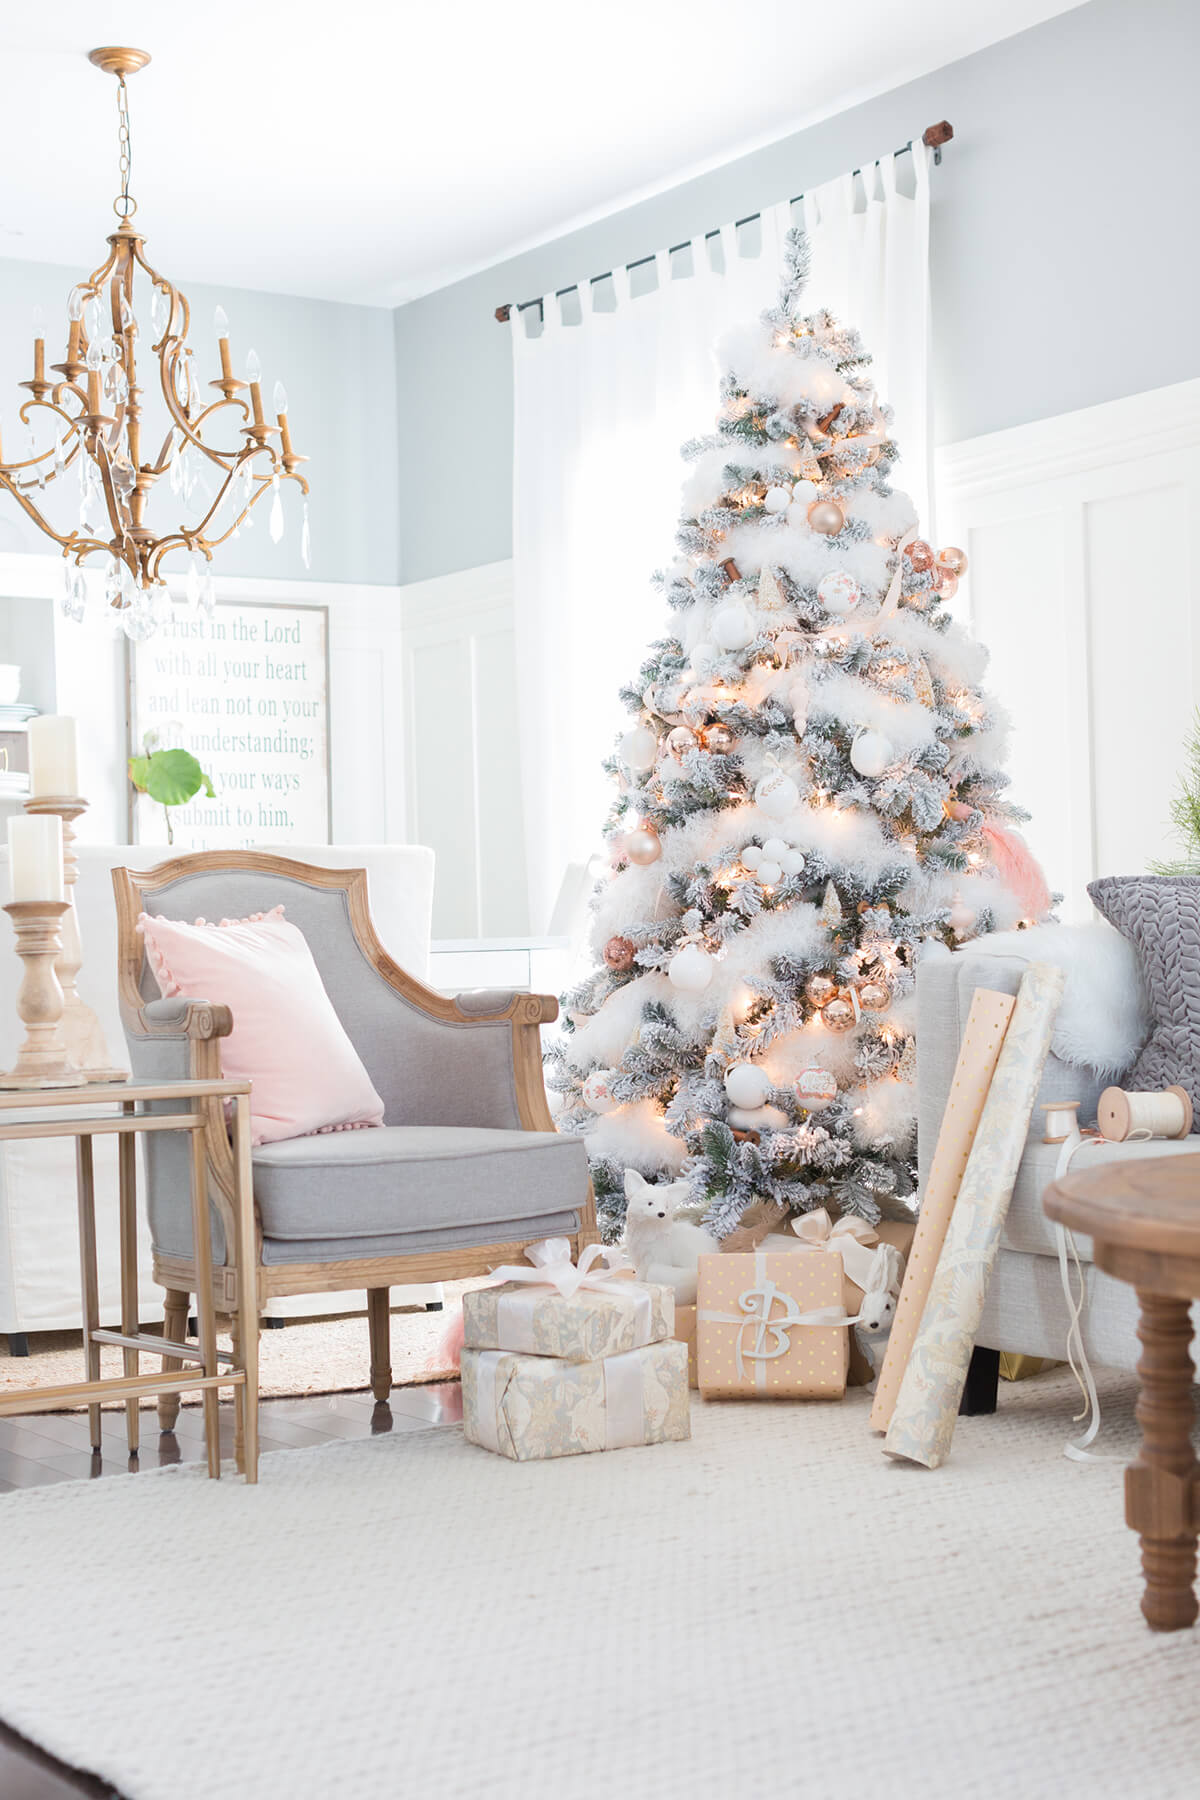 19 gold balls nestled in fluffy white snow - Christmas Room Decoration Ideas